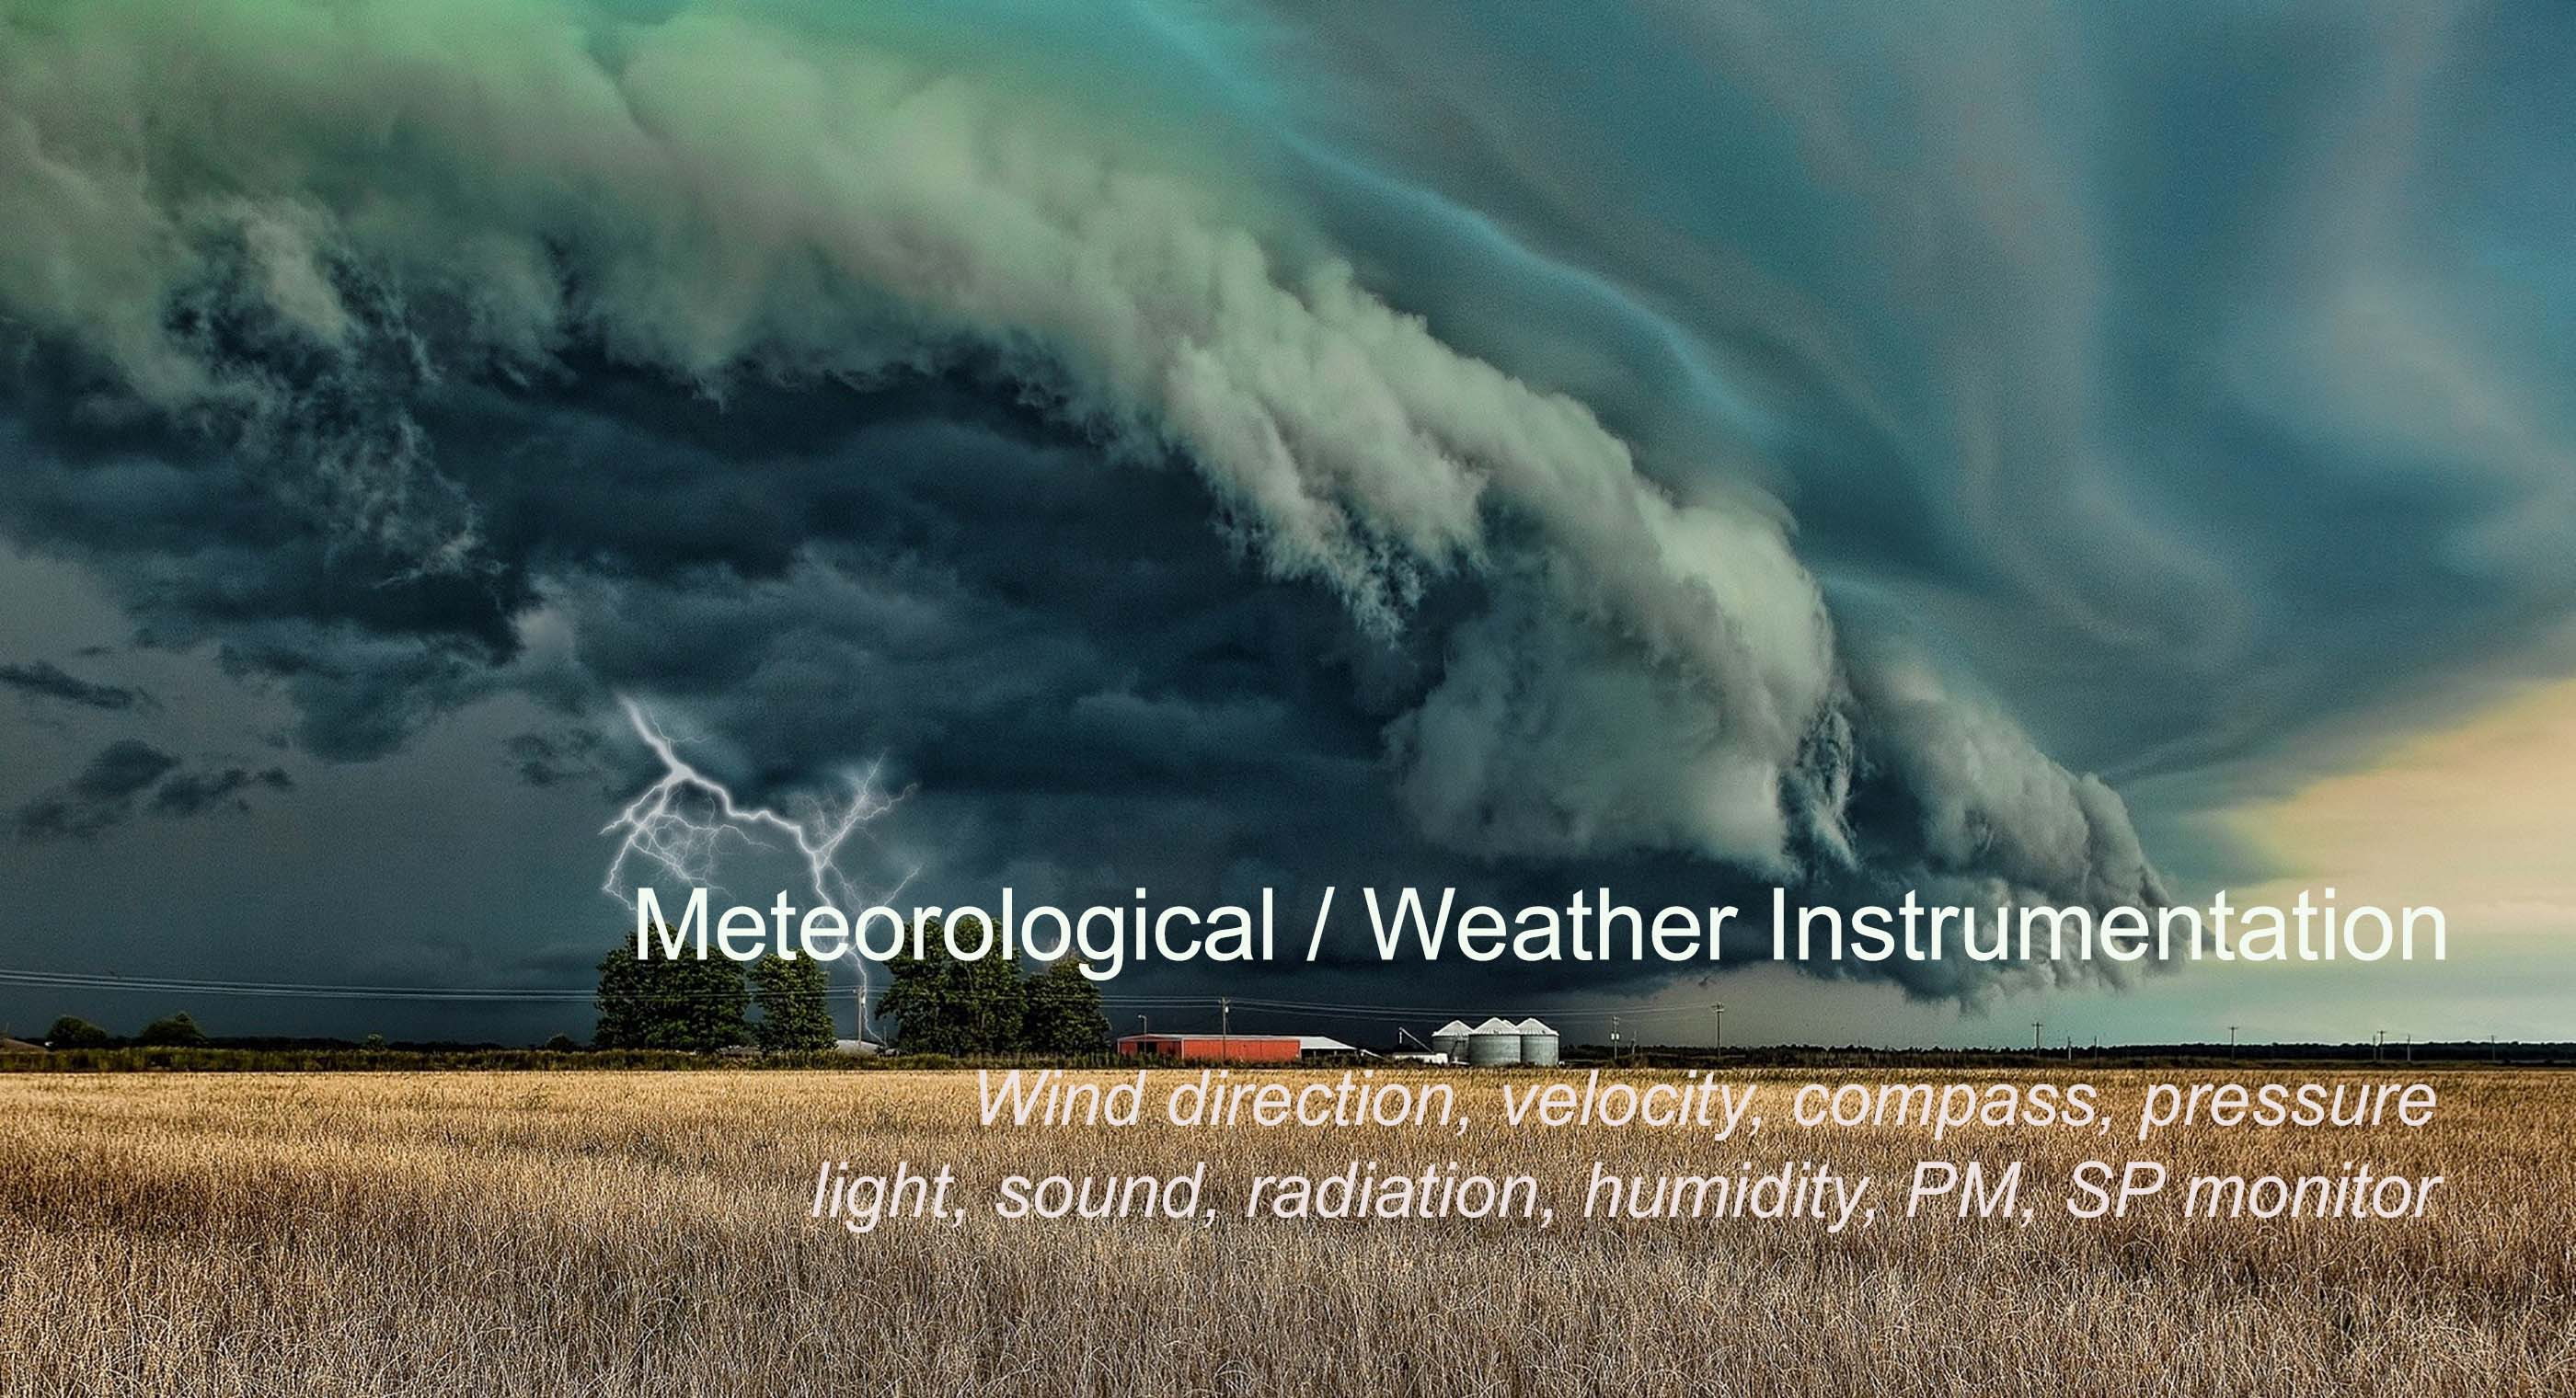 ek-engg-homepage-meteorological-instruments